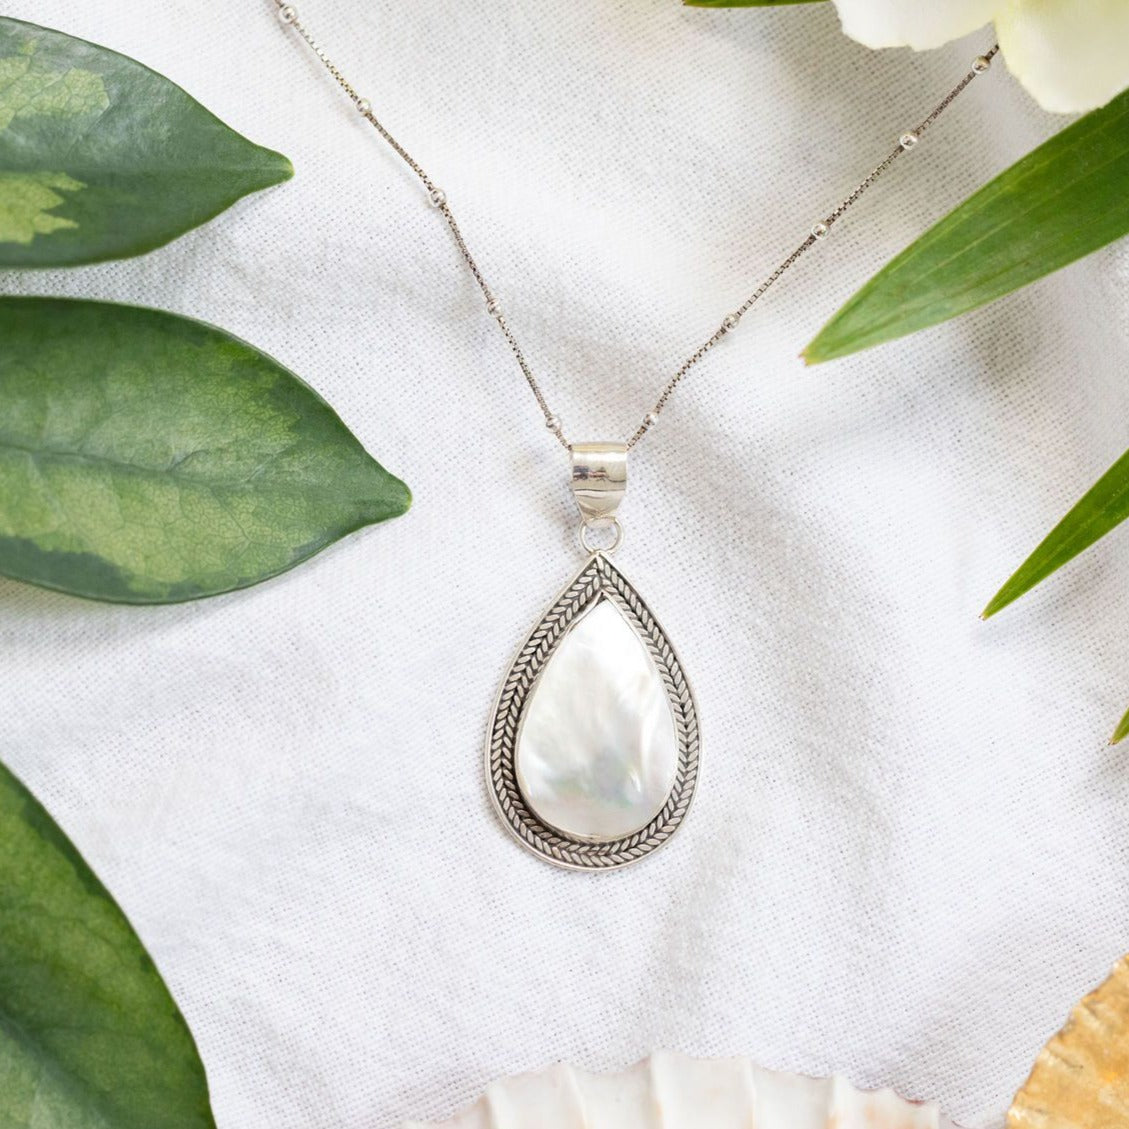 One ocean necklace